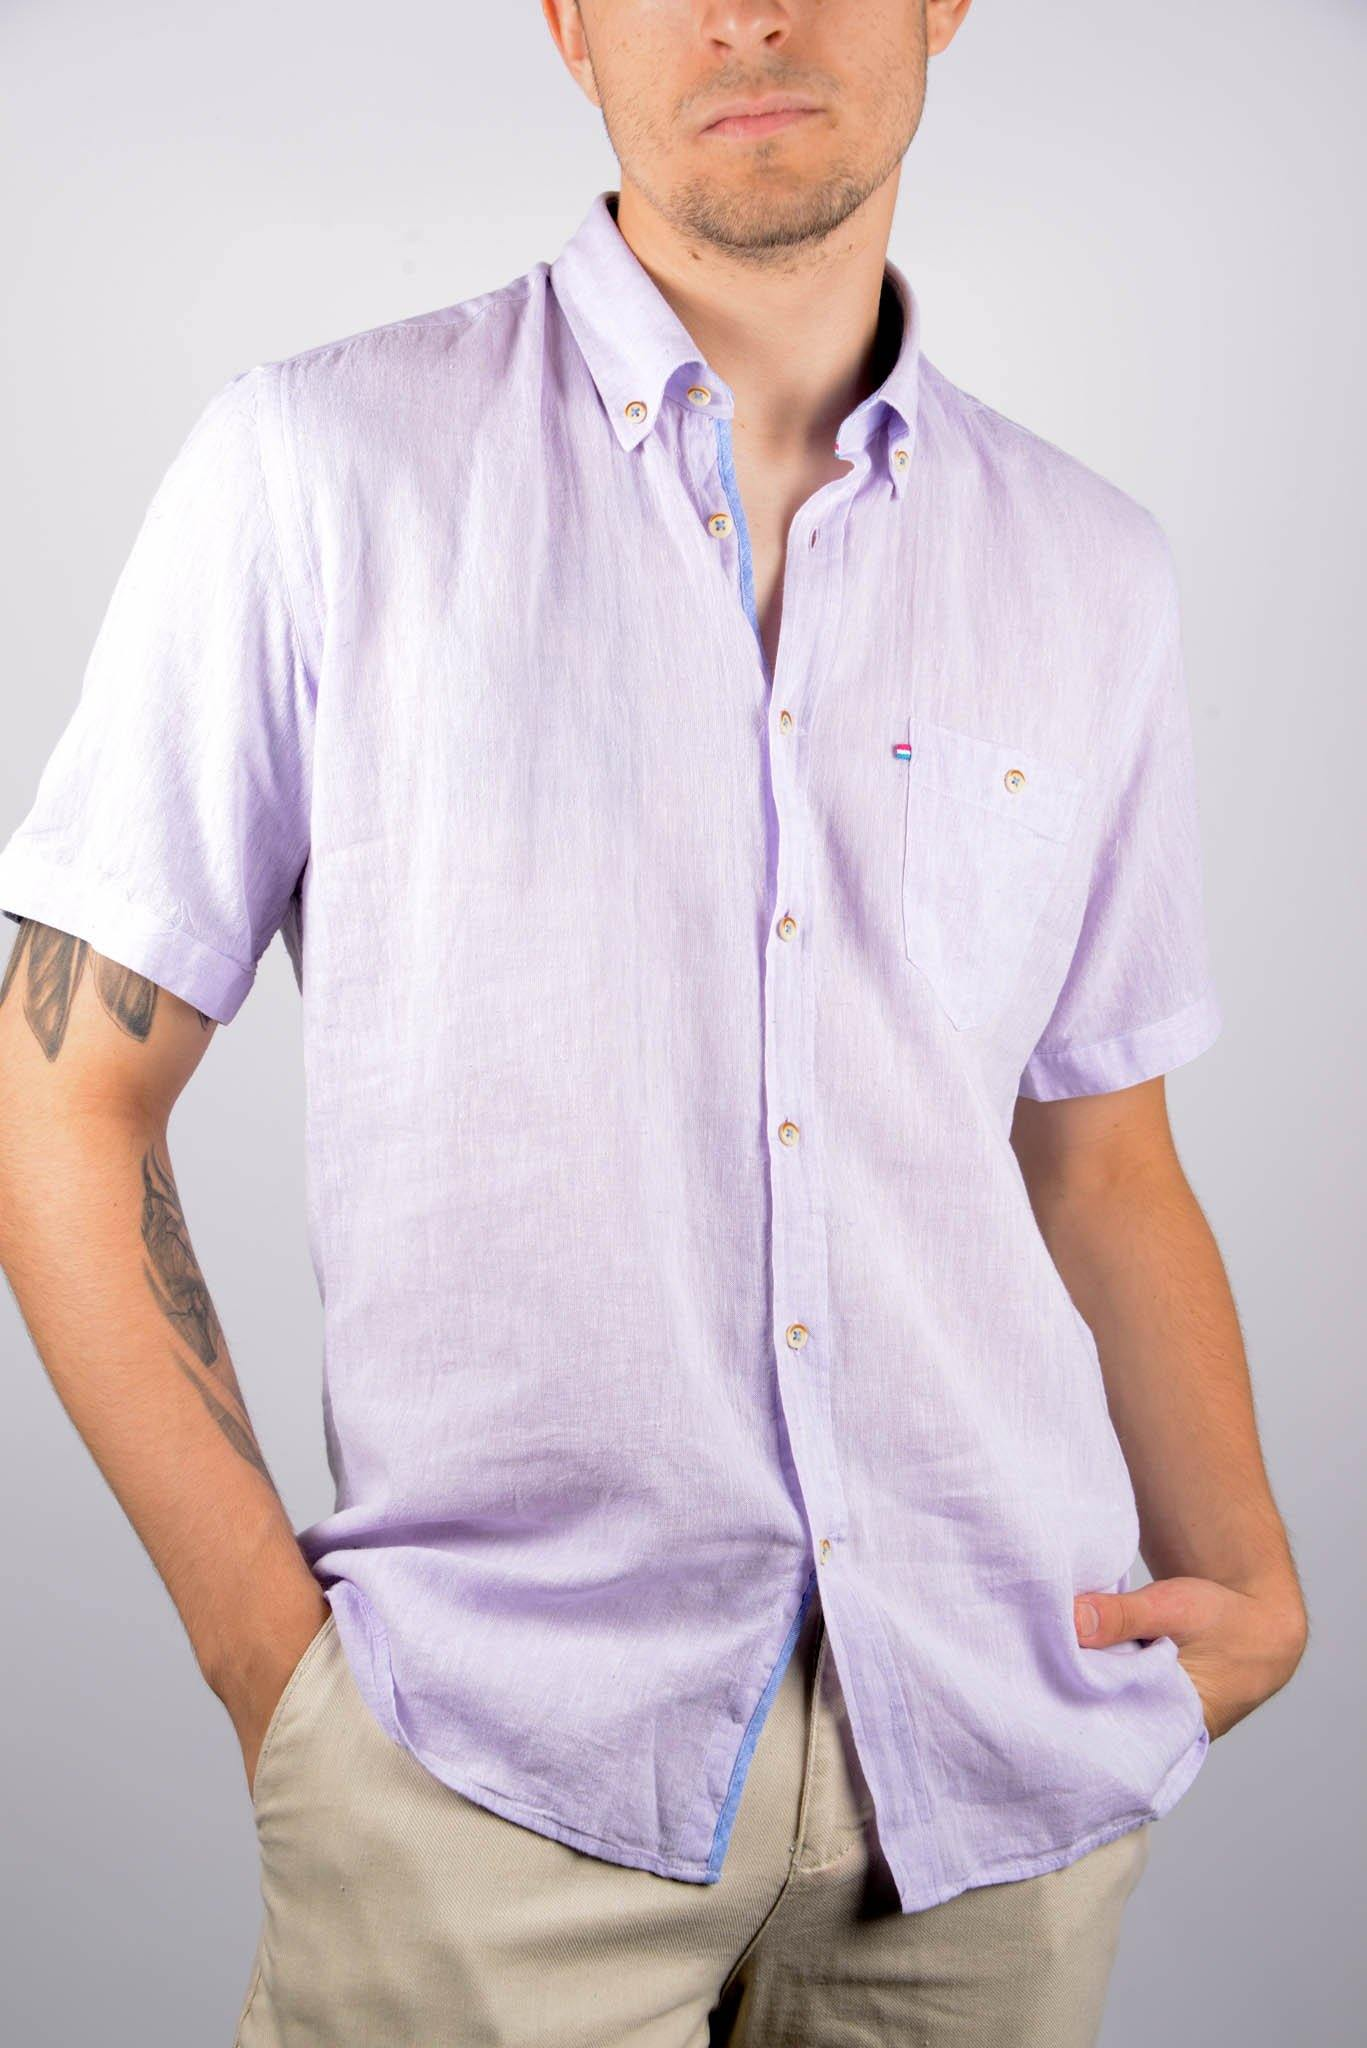 Short Sleeve Linen Shirt - Haight & Ashbury